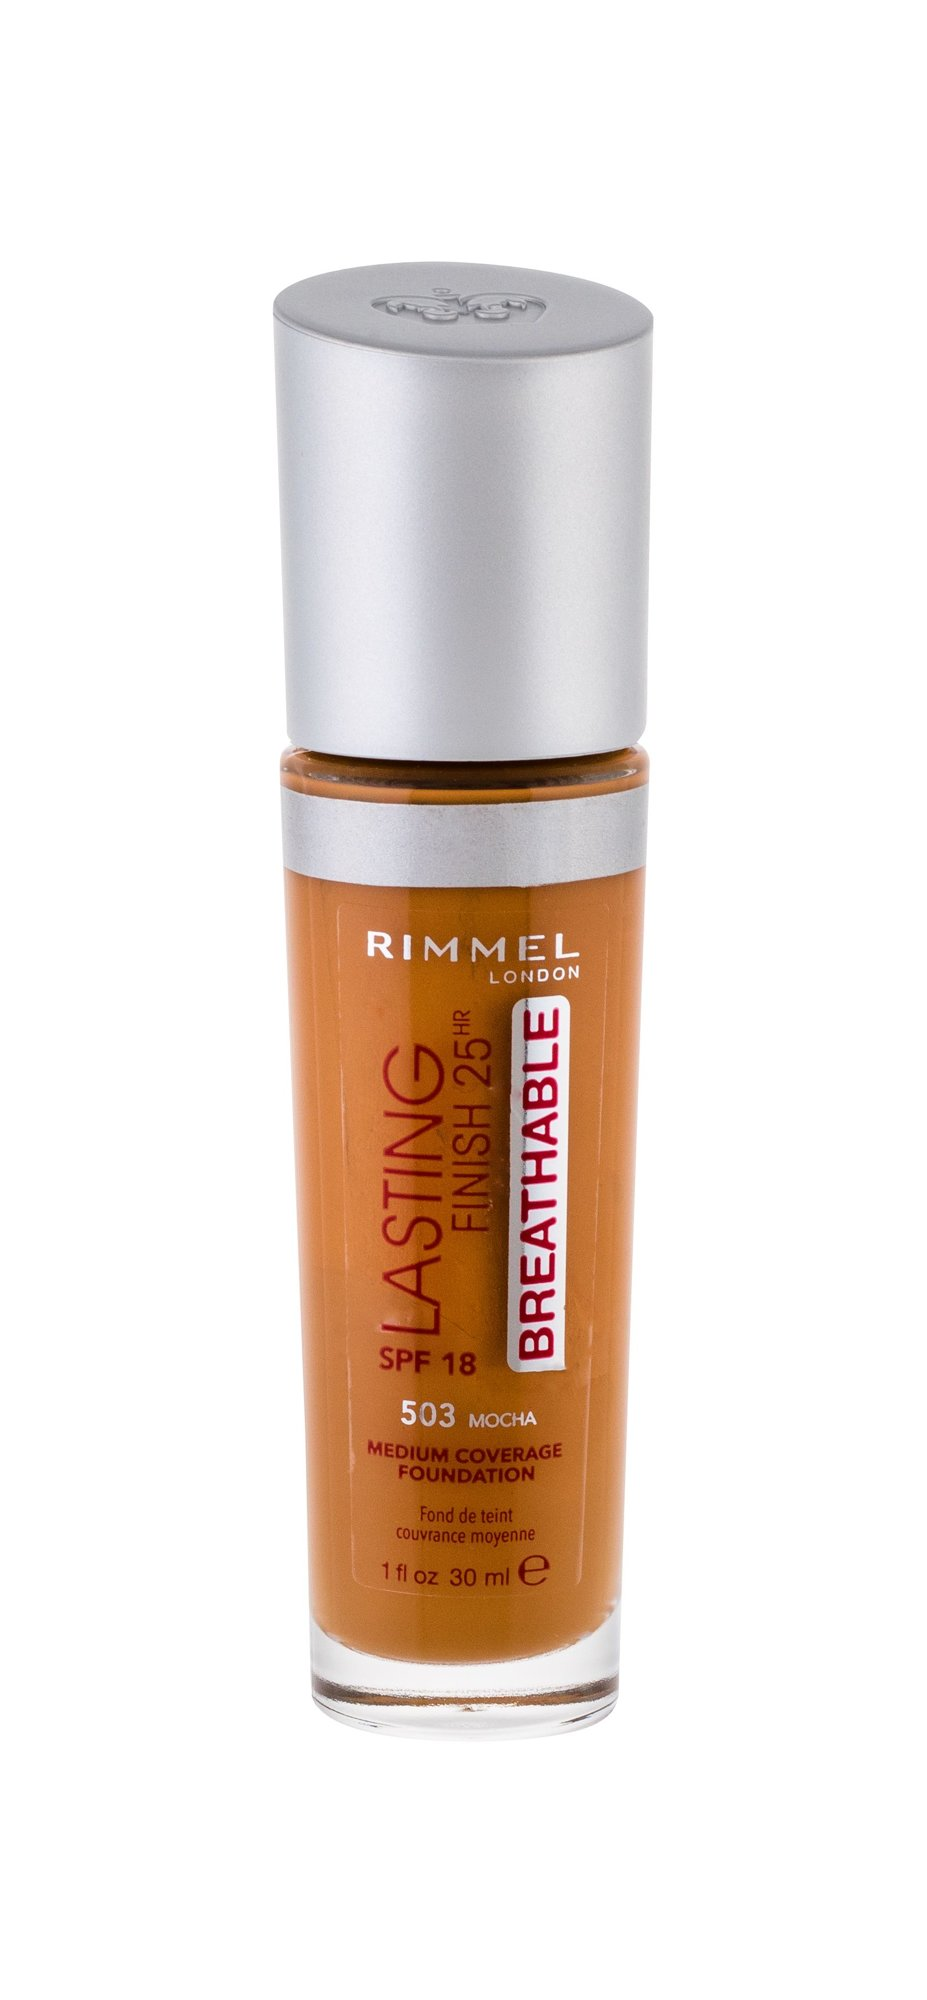 Rimmel London Lasting Finish Makeup 30ml 503 Mocha